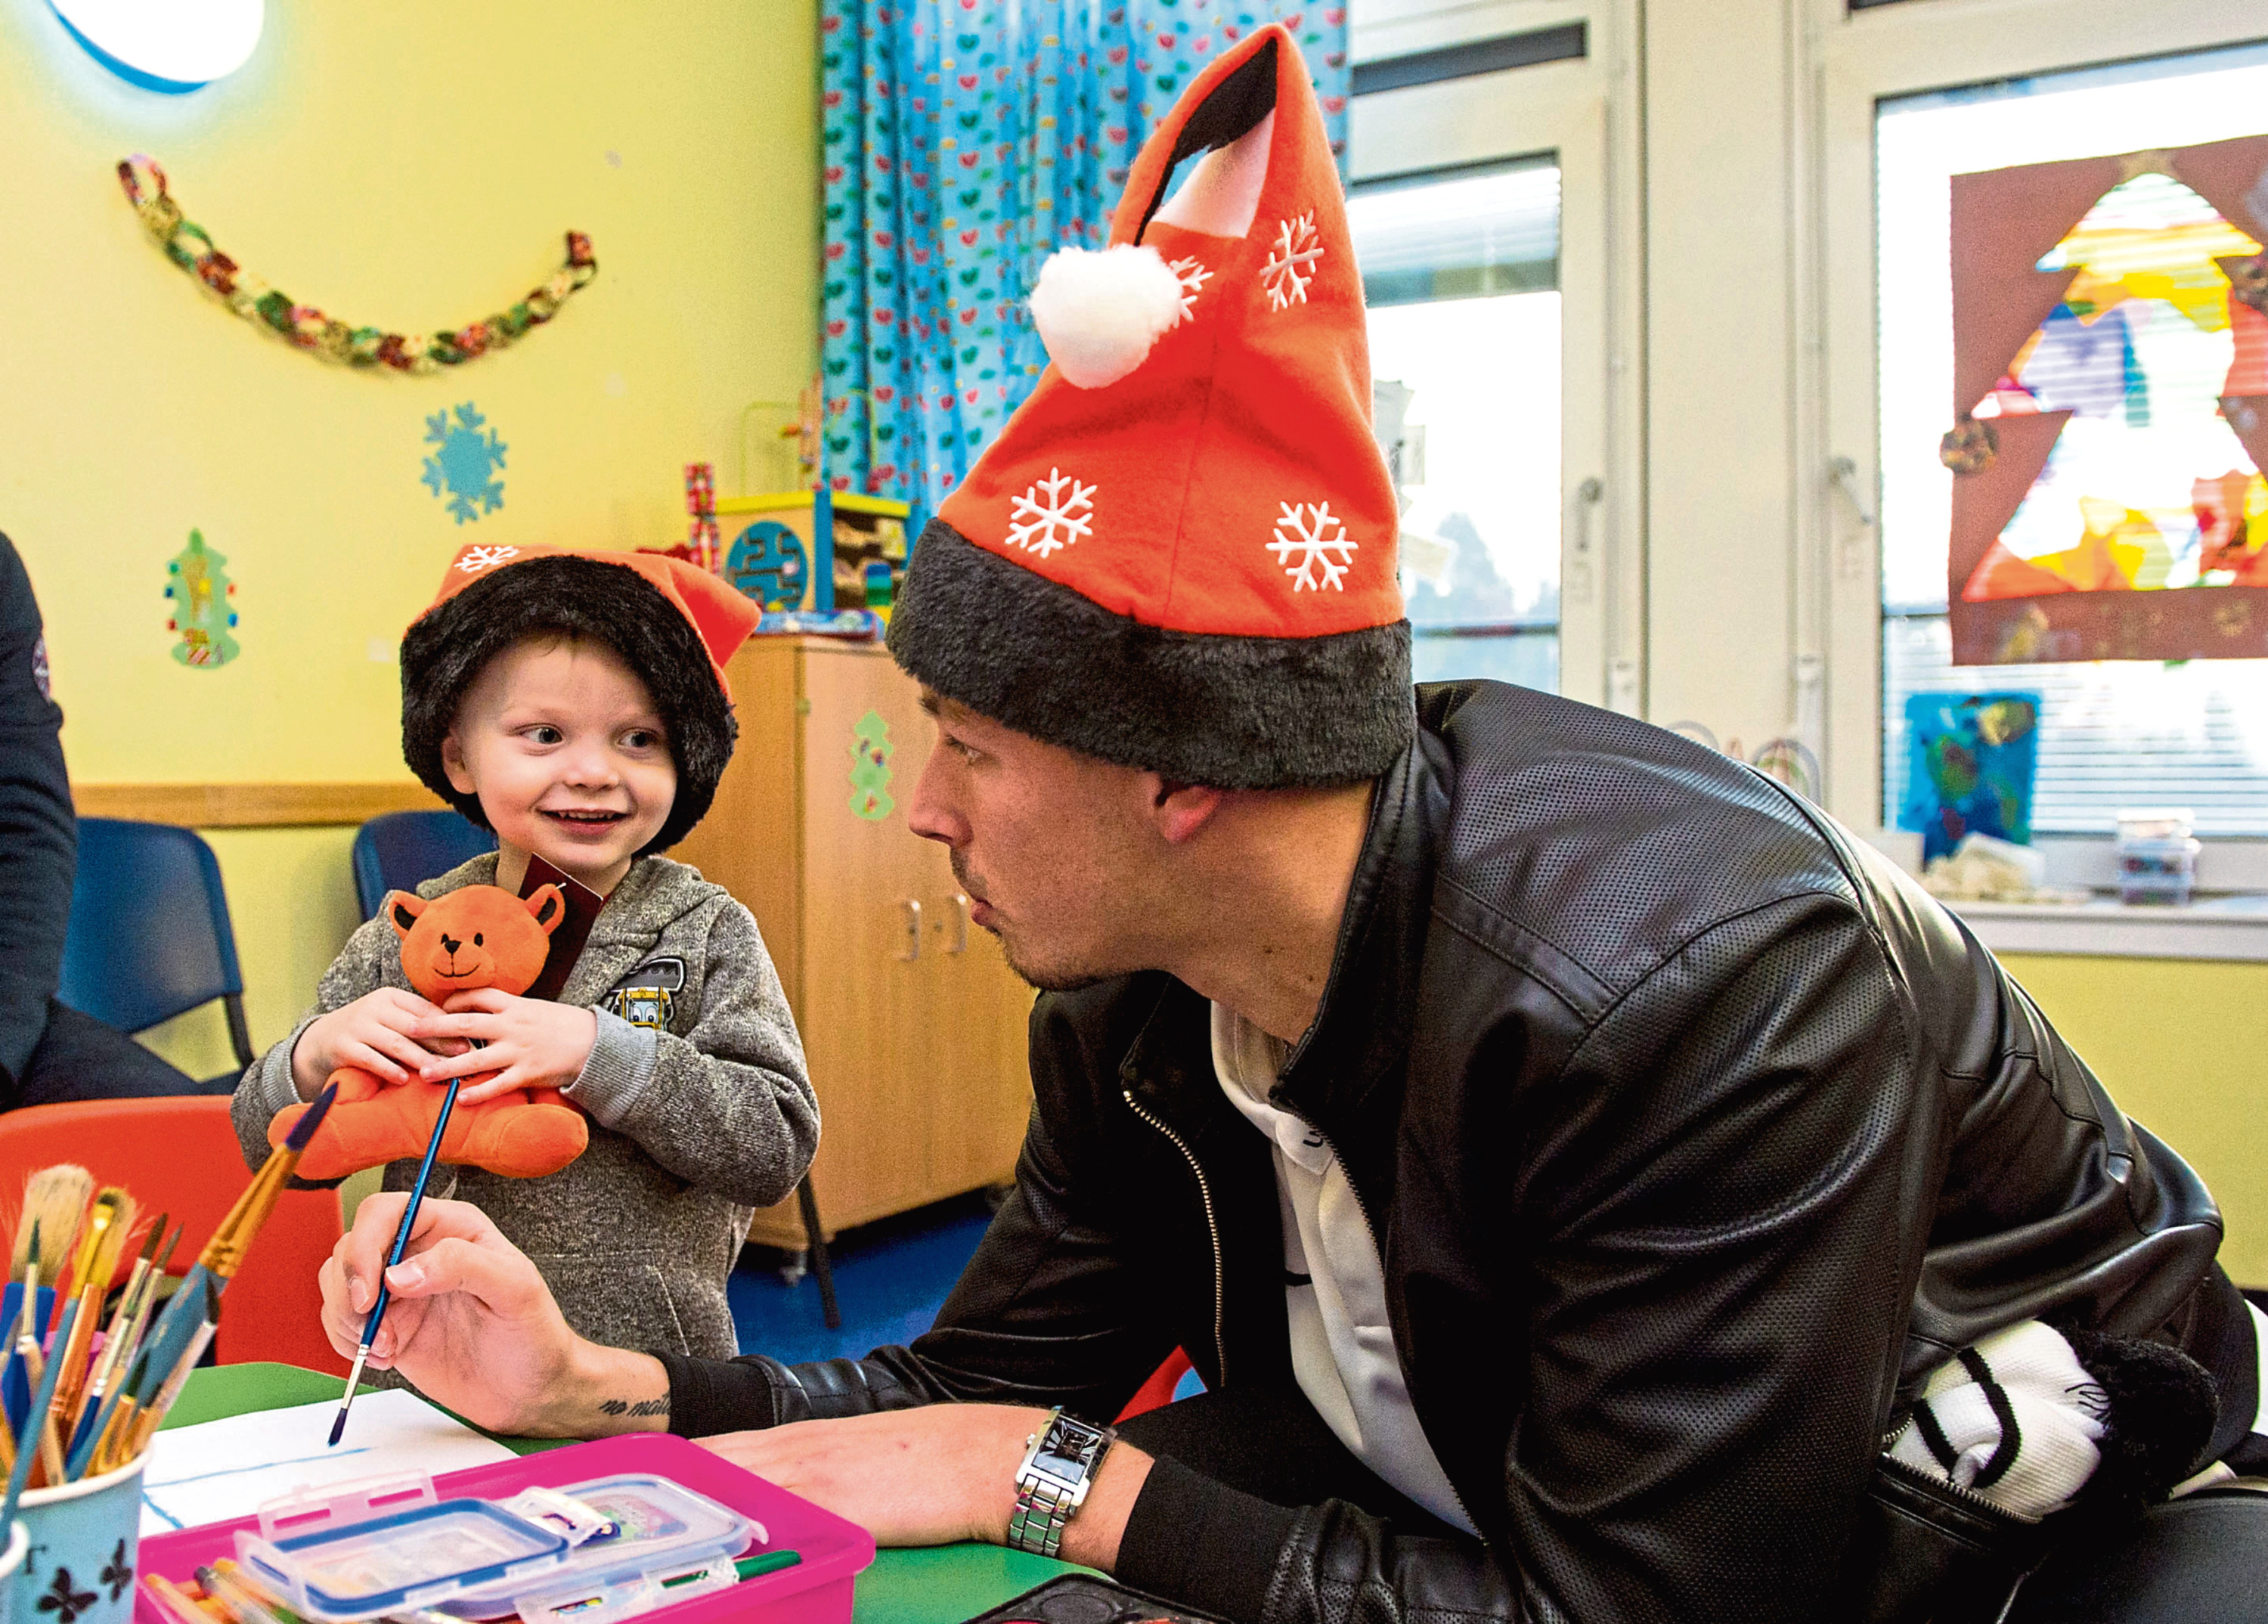 Benjamin Siegrist was part of the United party that visited Ninewells Hospital earlier this week to hand out Christmas presents